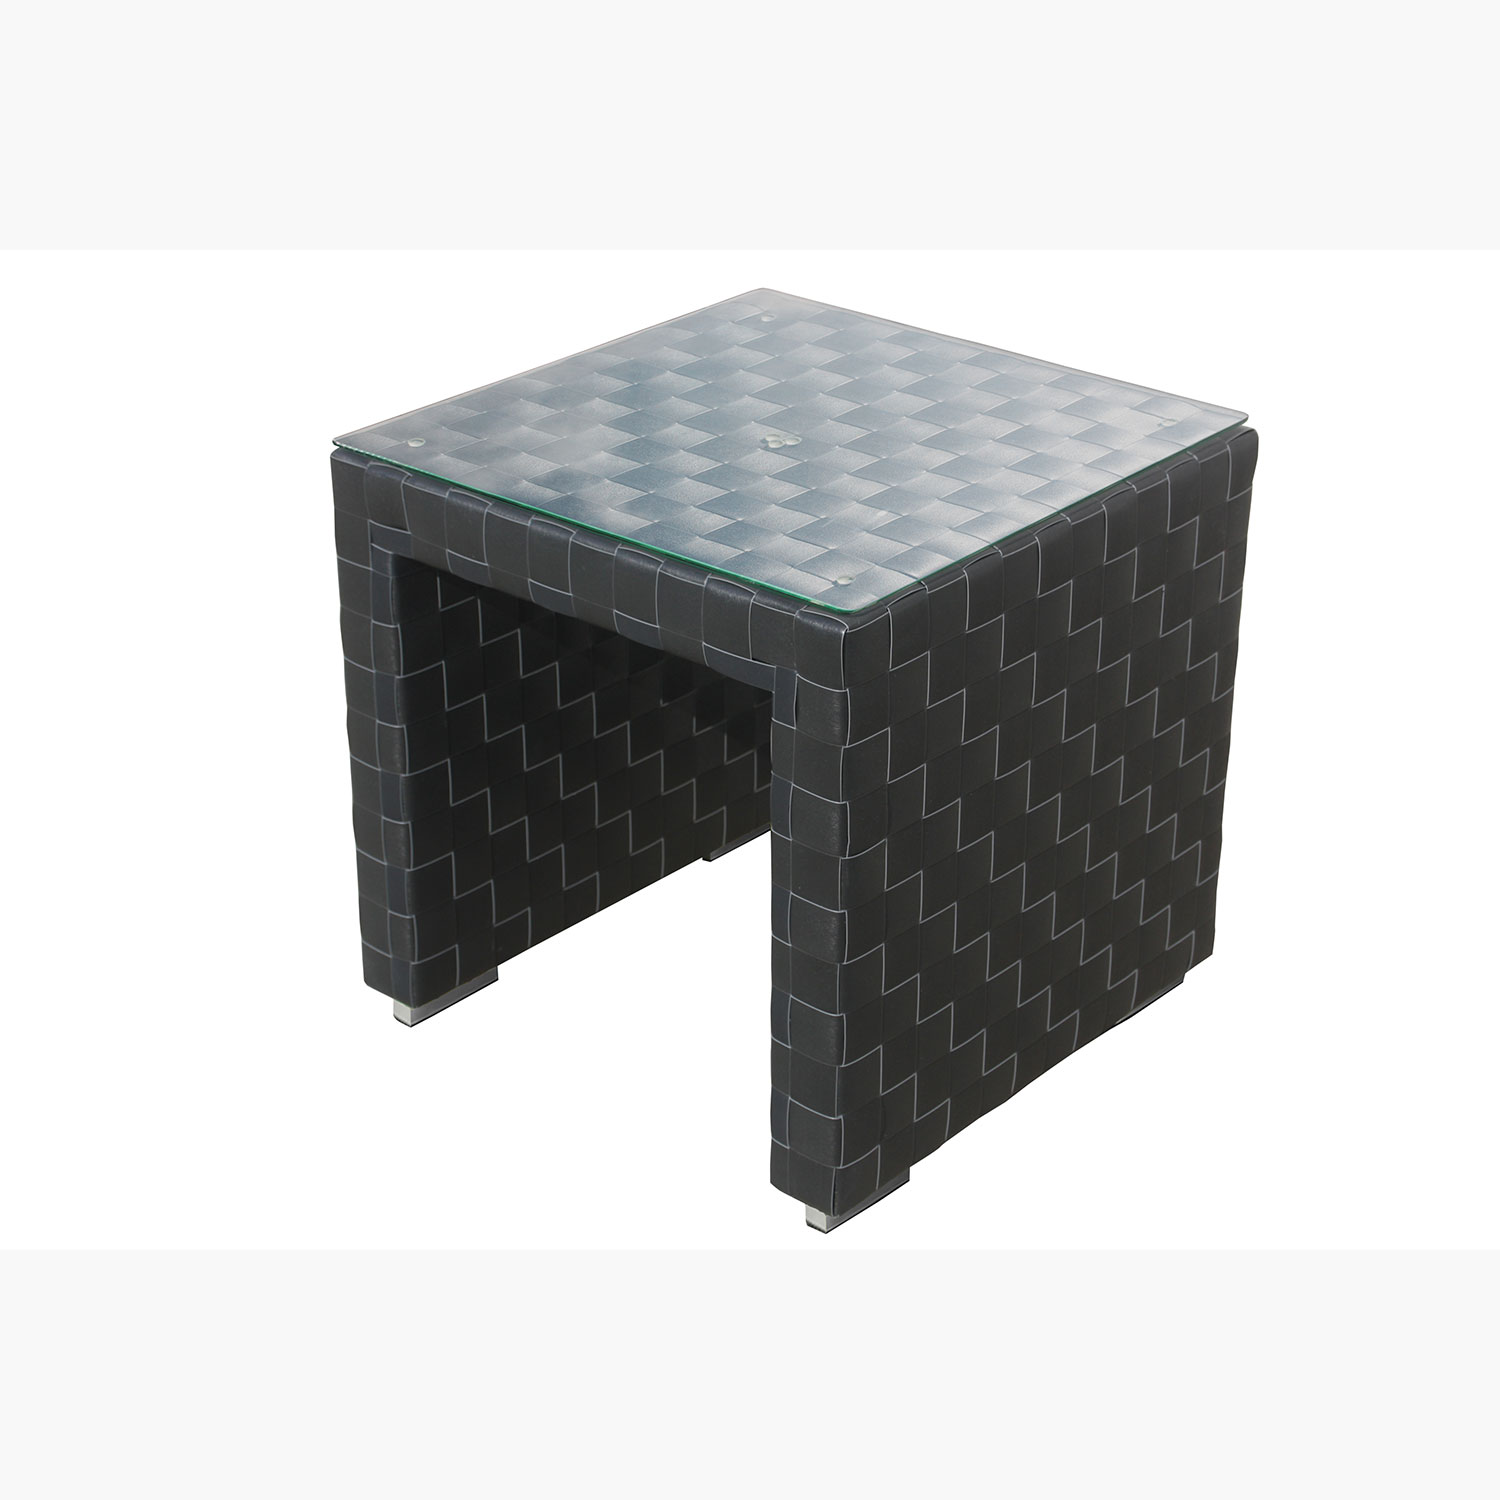 square accent table bdsqat outdoor furniture img small weber charcoal grill side half moon entry marble extendable farmhouse black plastic dining room centerpieces everyday prong